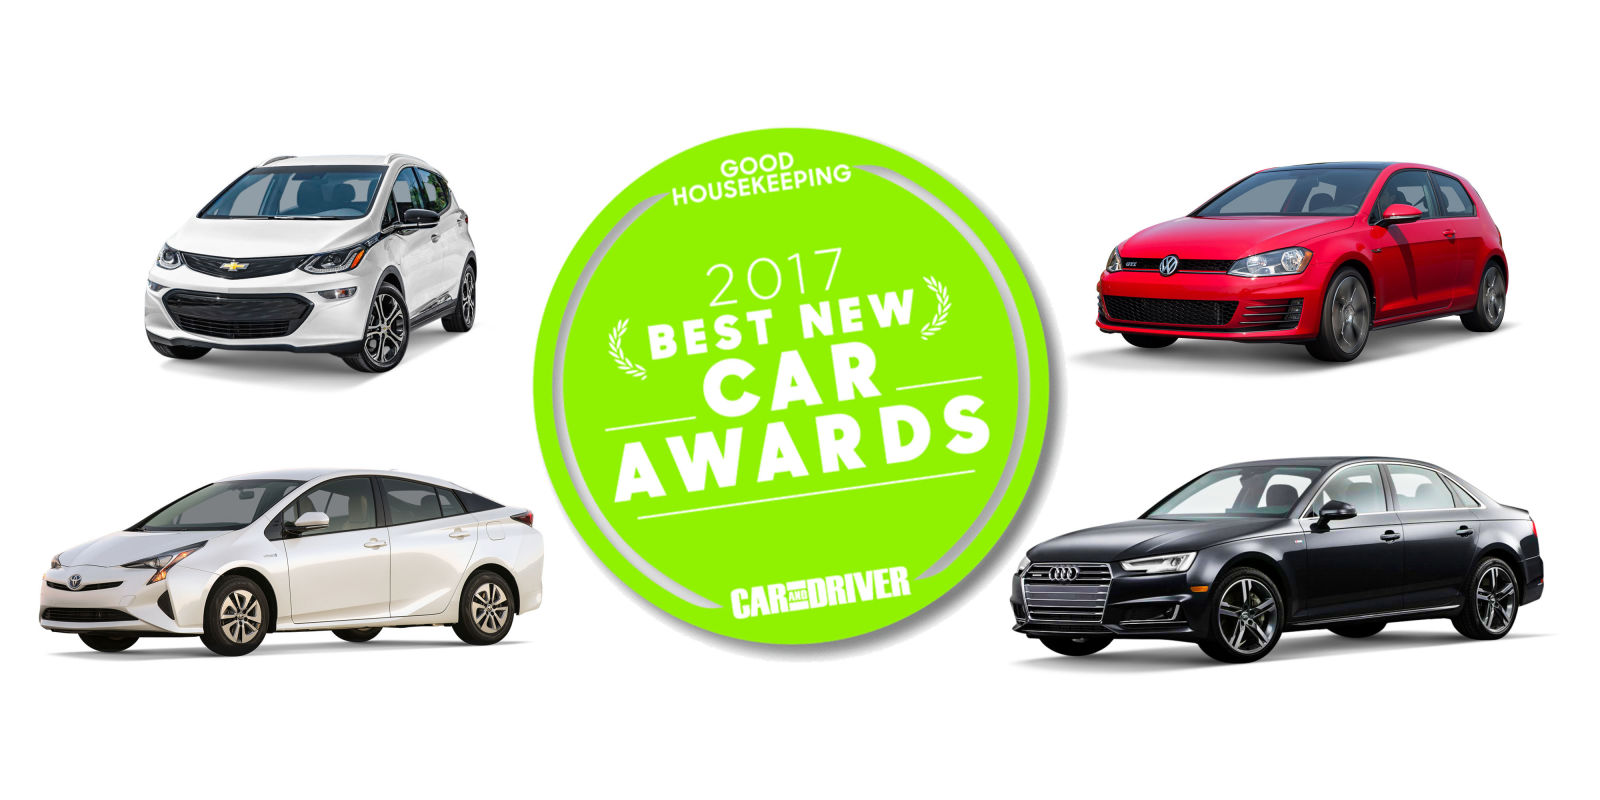 the good housekeeping car awards best cars of 2017